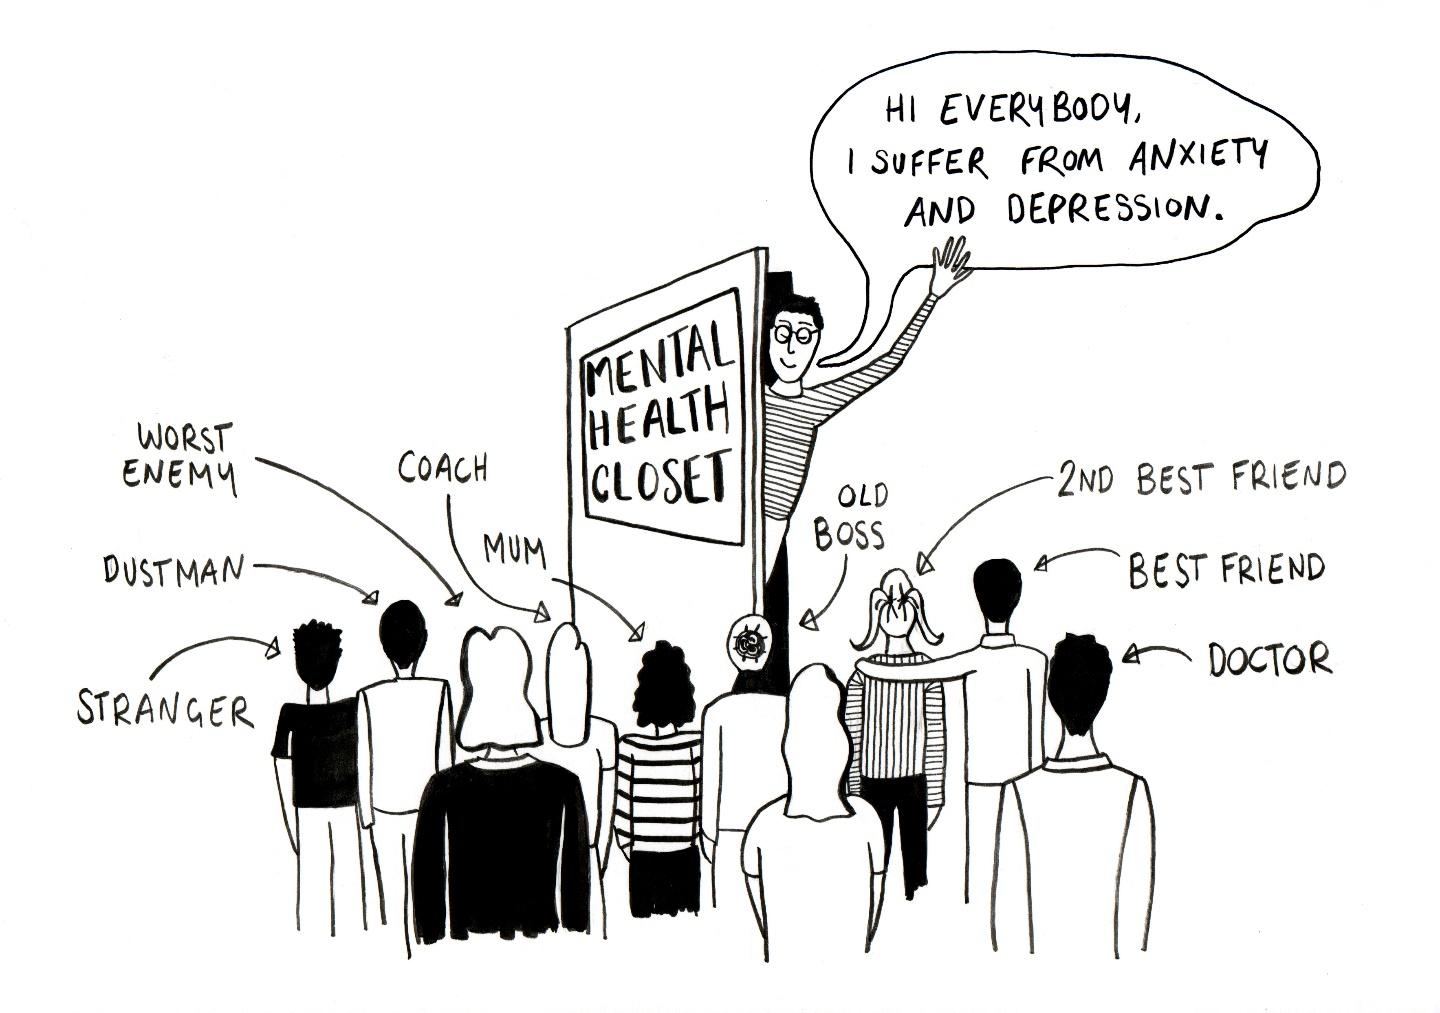 Black and white illustration showing a man telling people that he suffers from anxiety and depression.